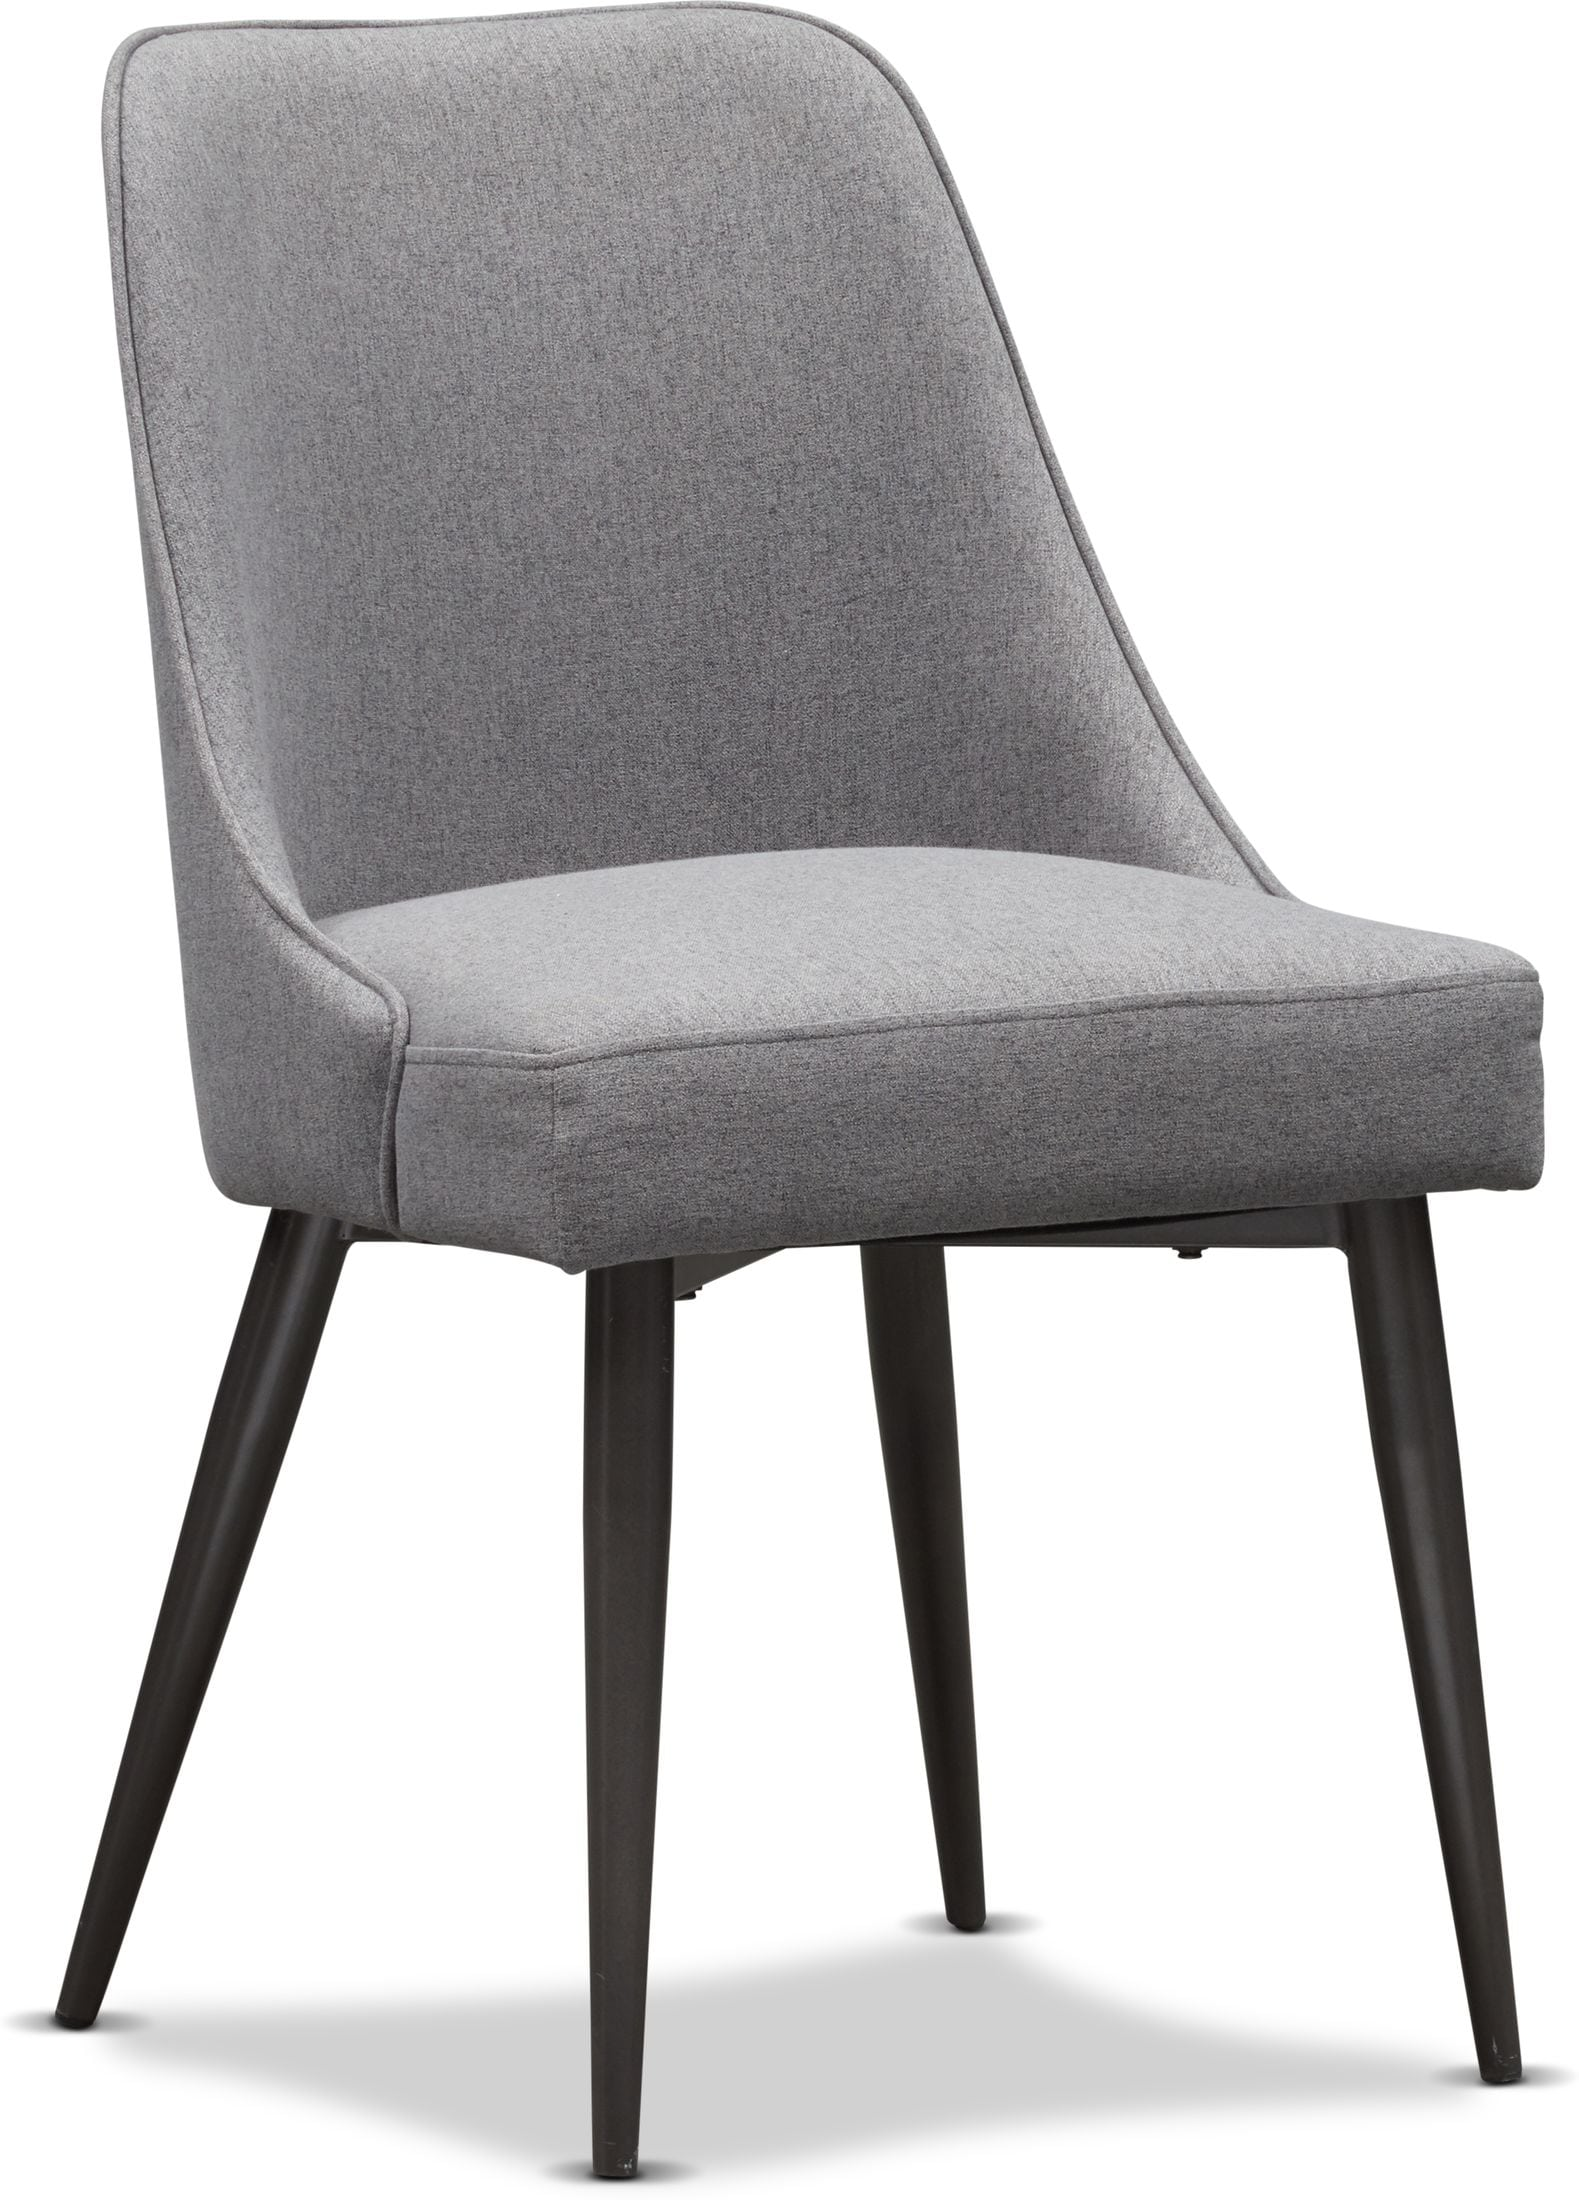 Dining Room Furniture - Lillian Upholstered Dining Chair